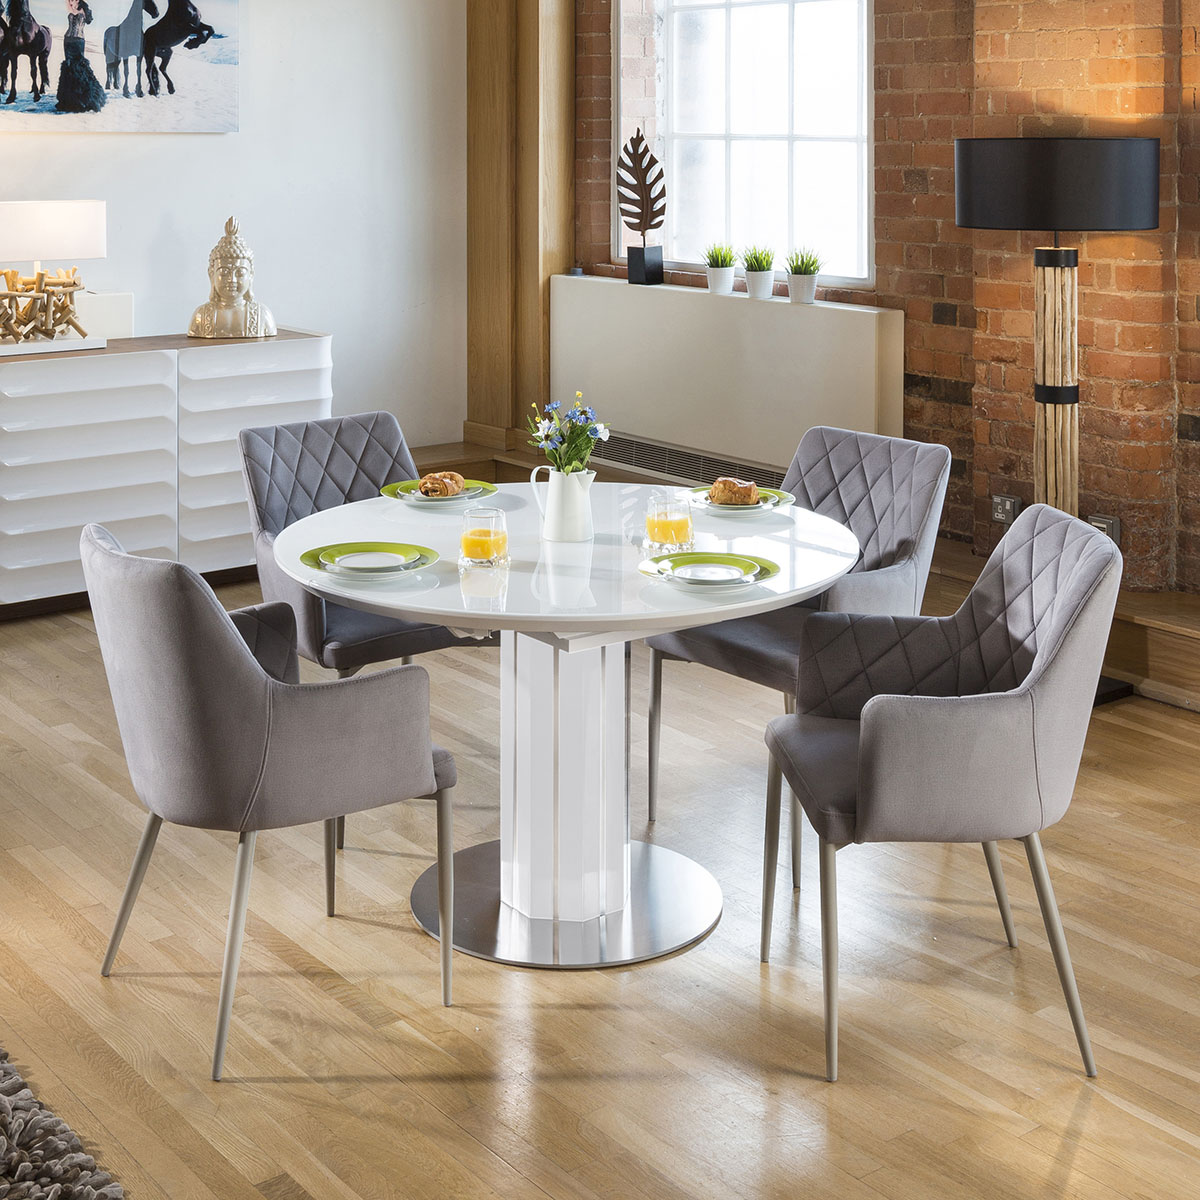 Details About Modern Extending Dining Set Oval Round Glass Wht Table 4 Ice Chairs